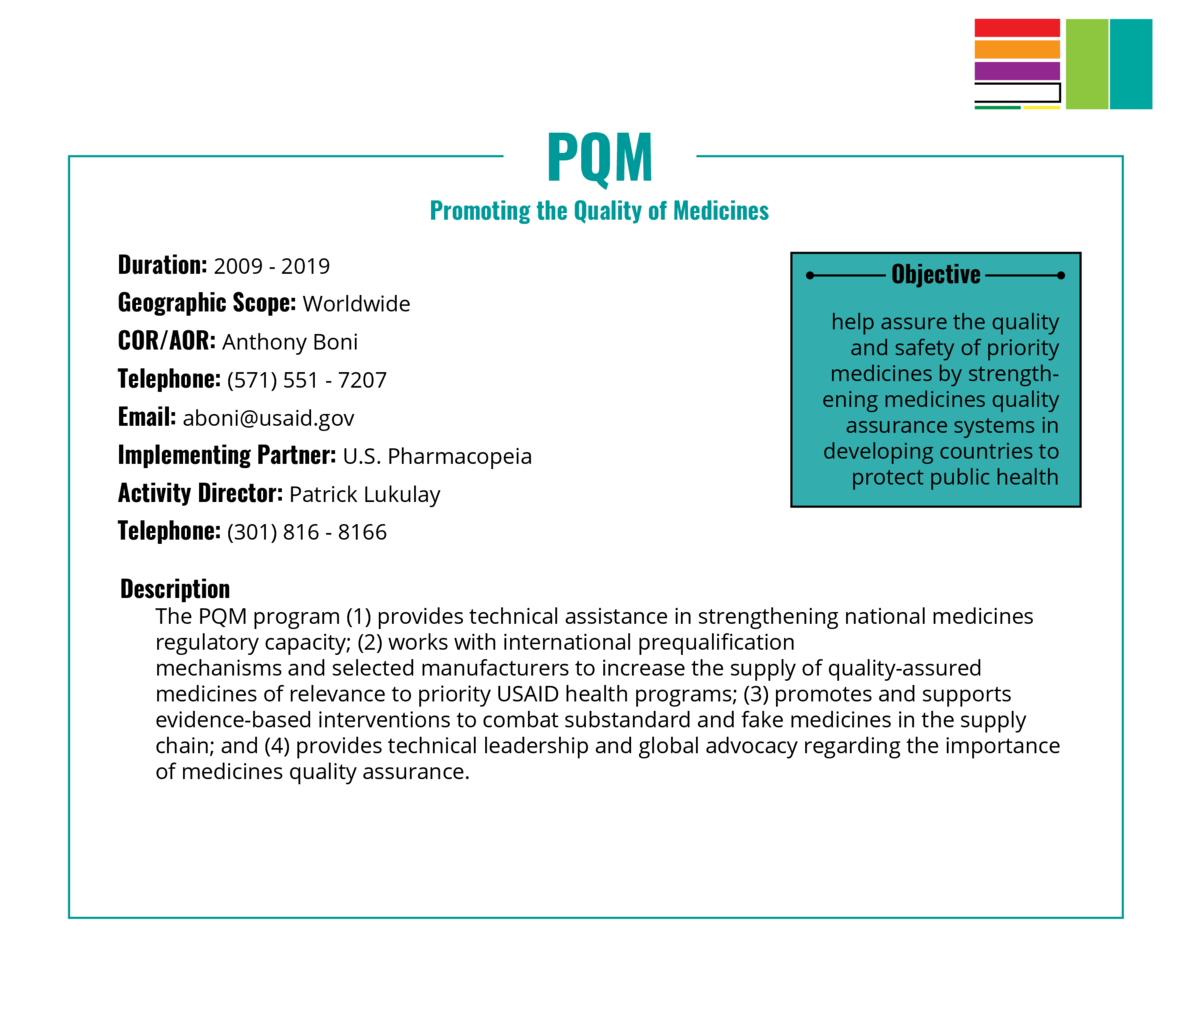 PQM Promoting the Quality of Medicines Duration 2009 - 2019 Geographic  Scope Worldwide COR AOR Anthony